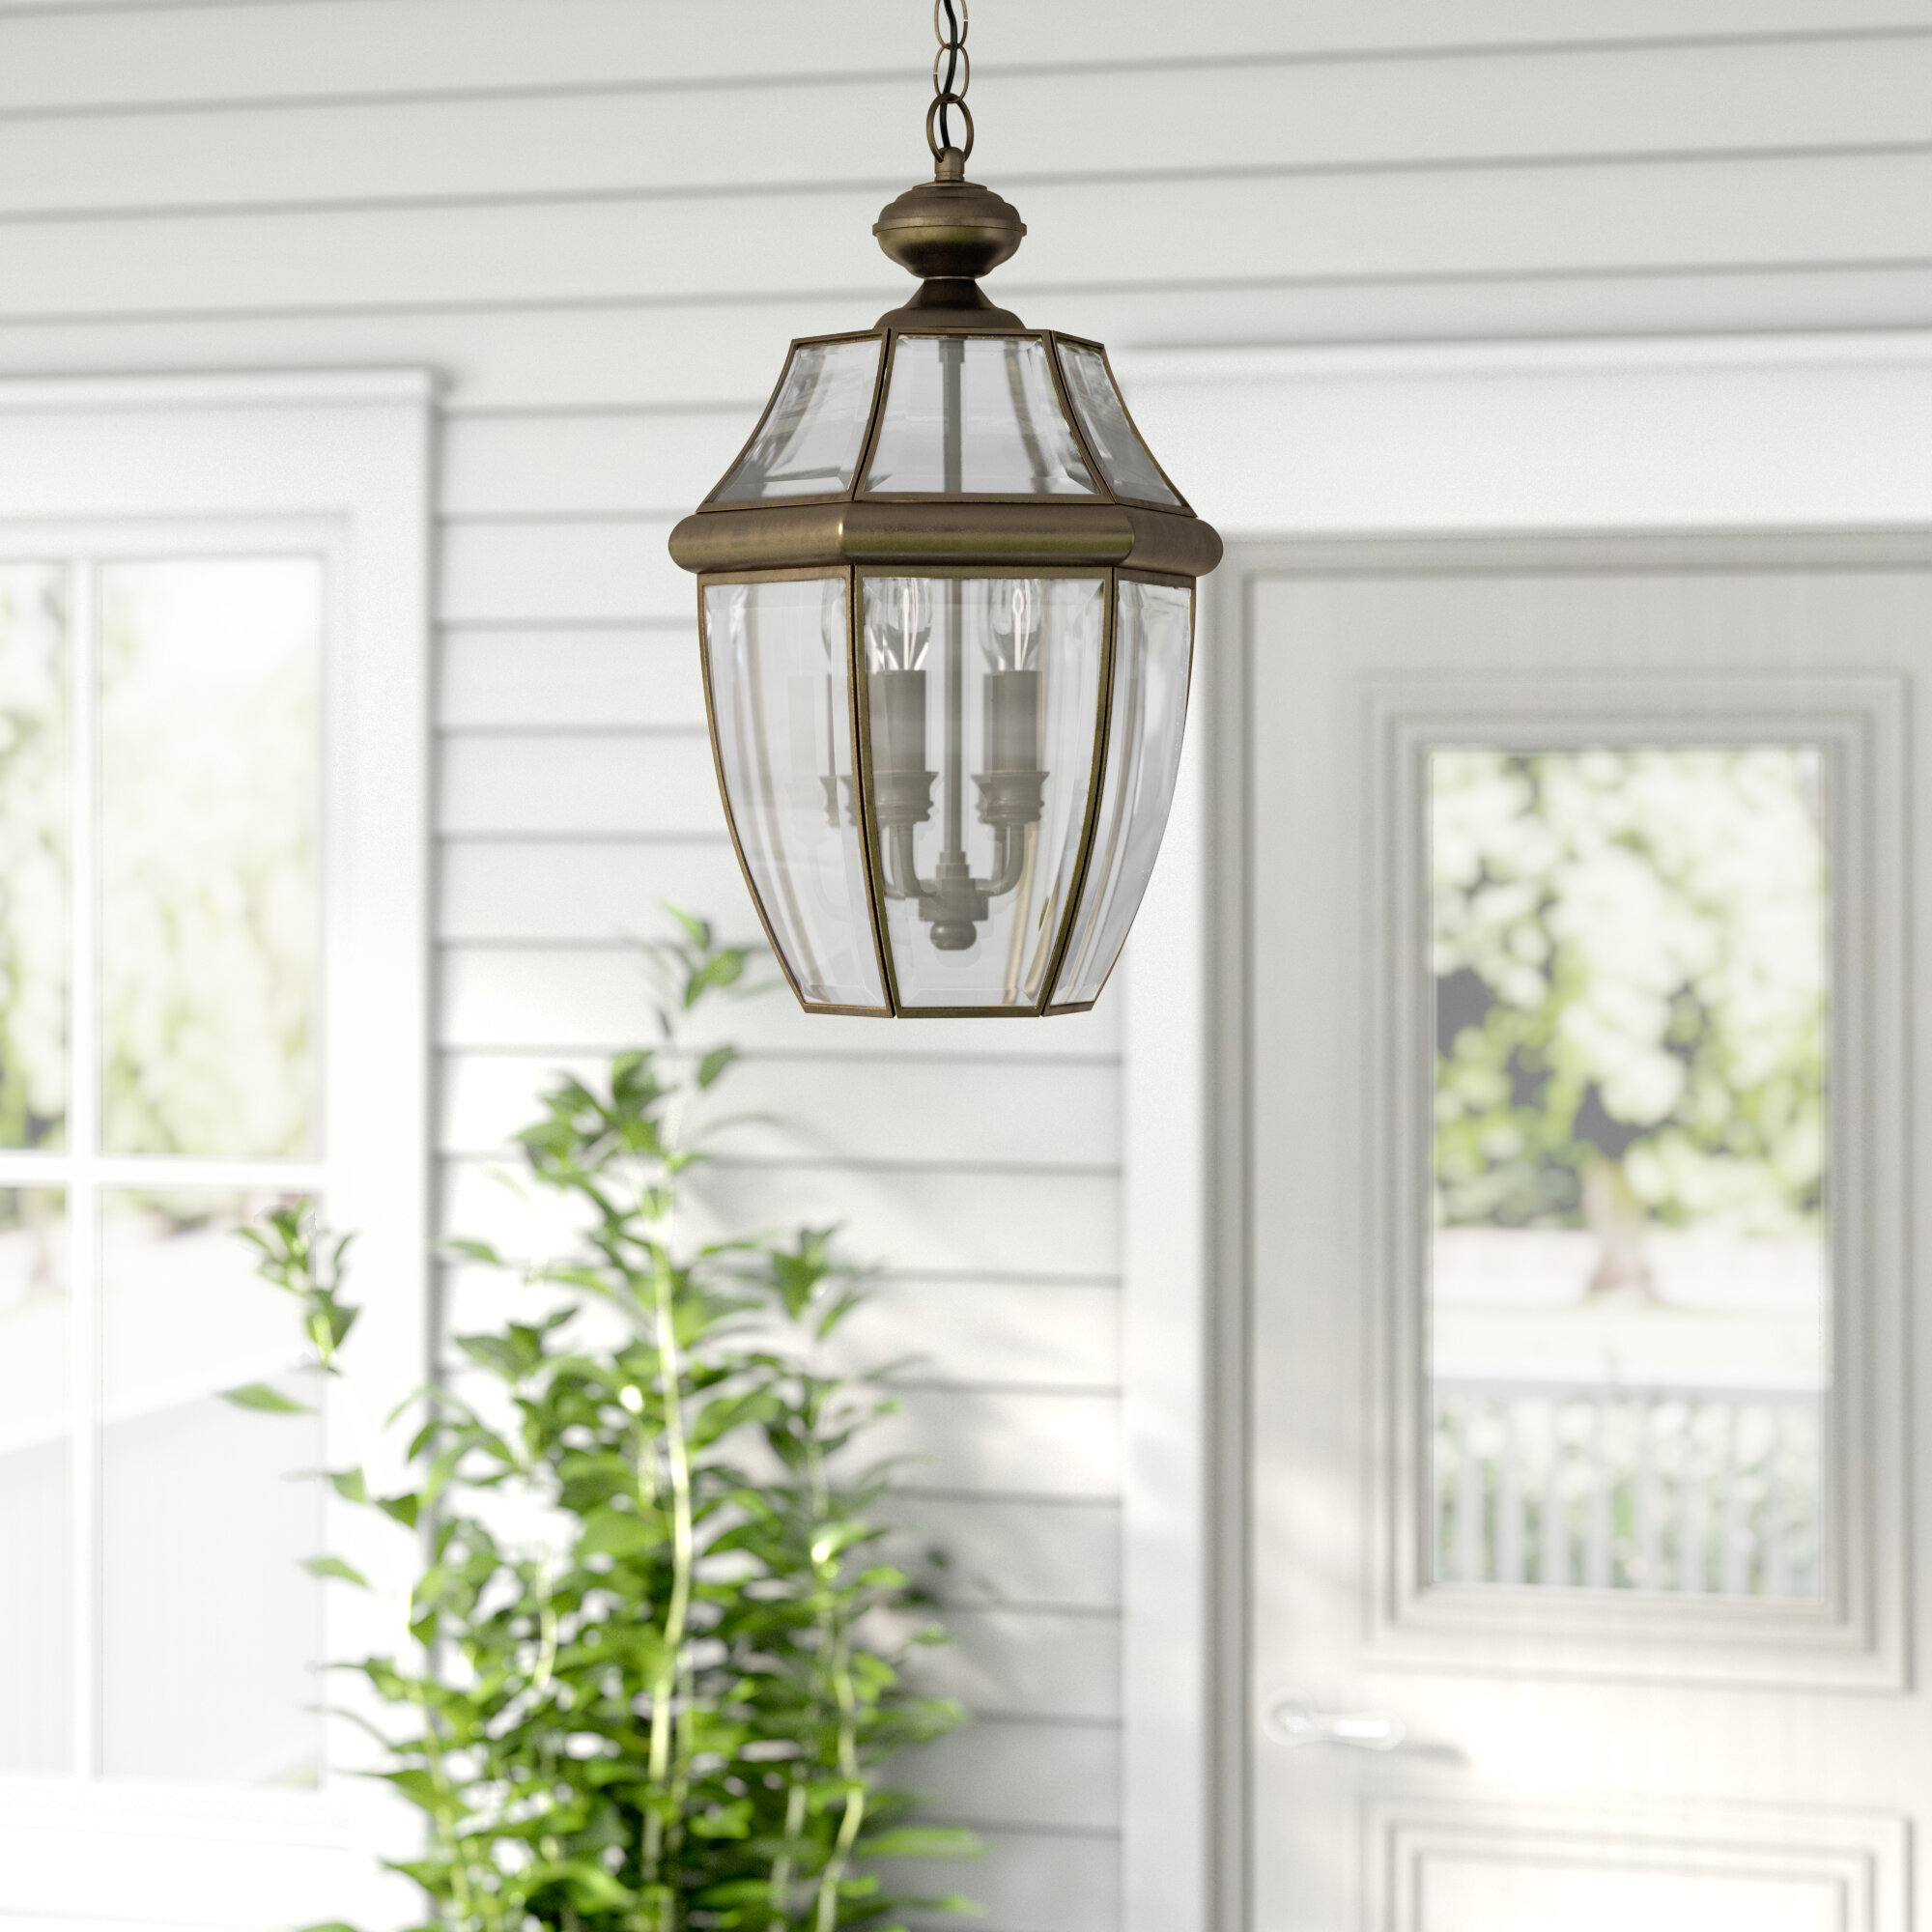 Darby Home Co Knudson 3 Bulb 20 75 H Outdoor Hanging Lantern Reviews Wayfair